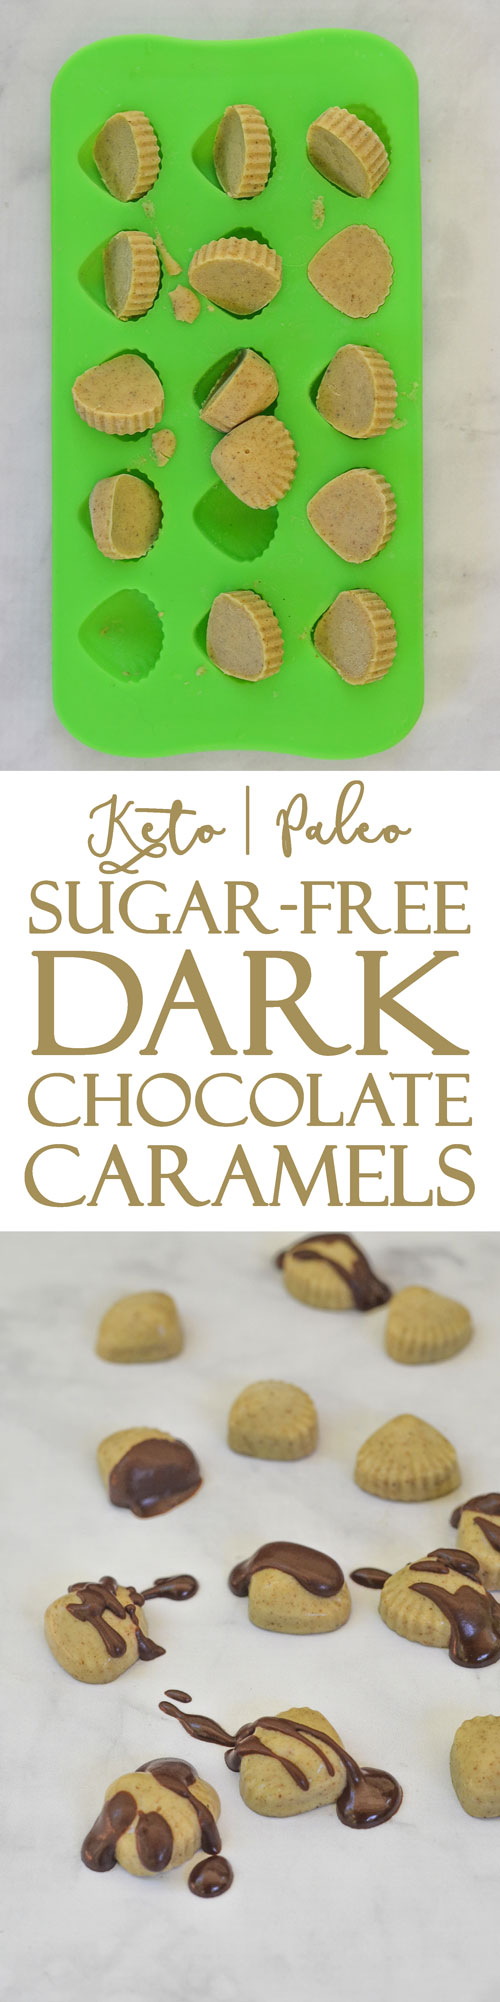 A simple and delicious recipe for sugar-free dark chocolate caramels. Made using a keto caramel sauce, these candies contain no harmful artificial sweeteners. Low-carb, Paleo, sugar-free, keto.